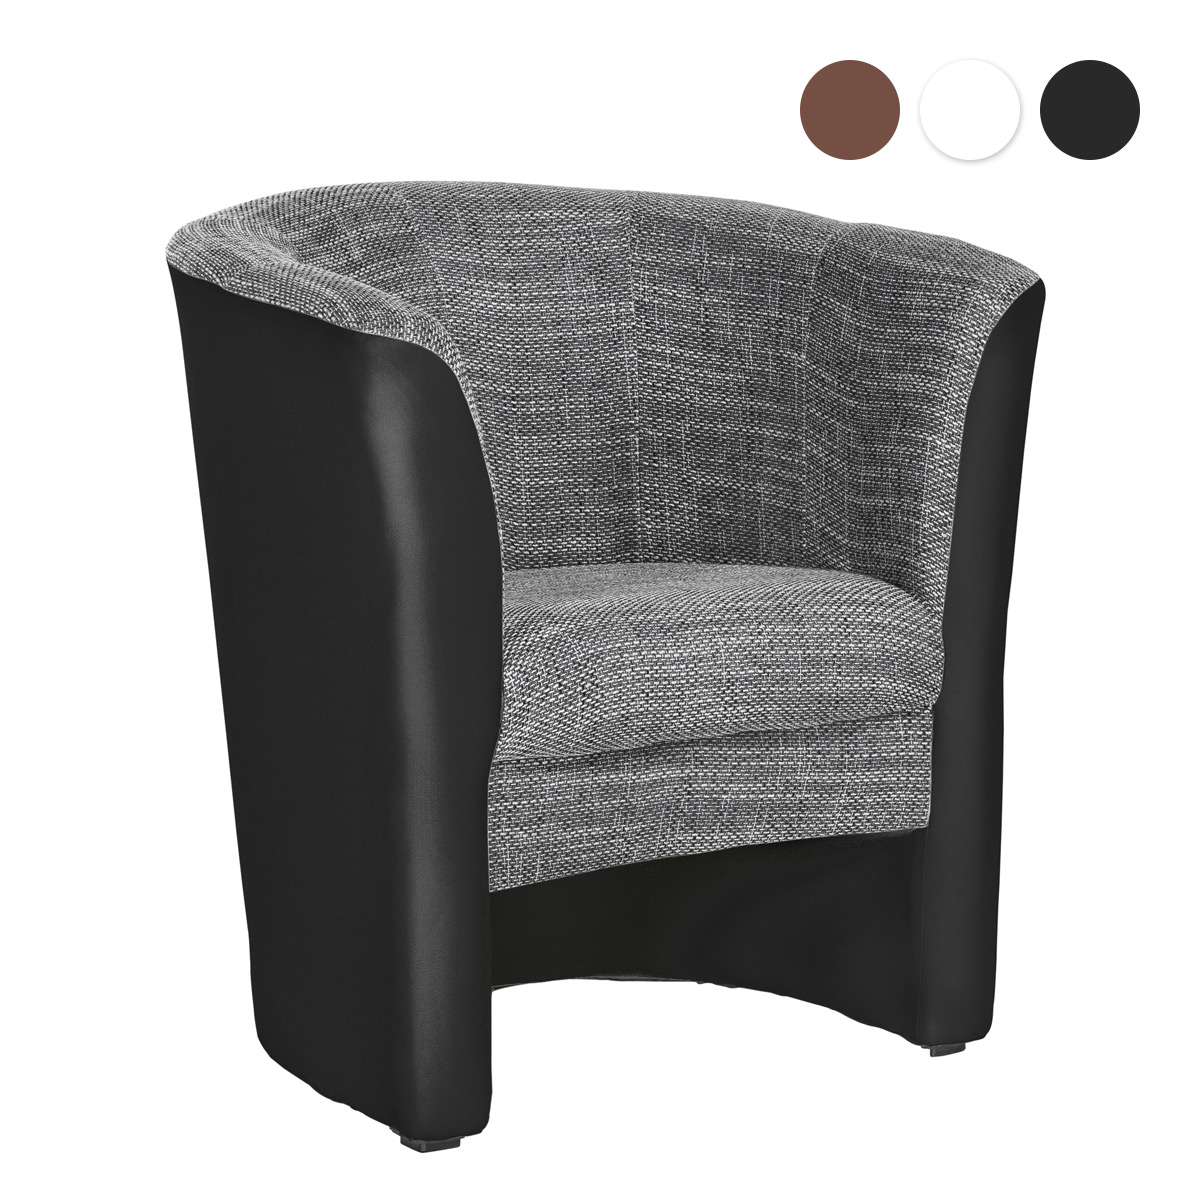 Cocktailsessel-Pepe-Webstoff-Clubsessel-Loungesessel-Sessel-Relaxsessel